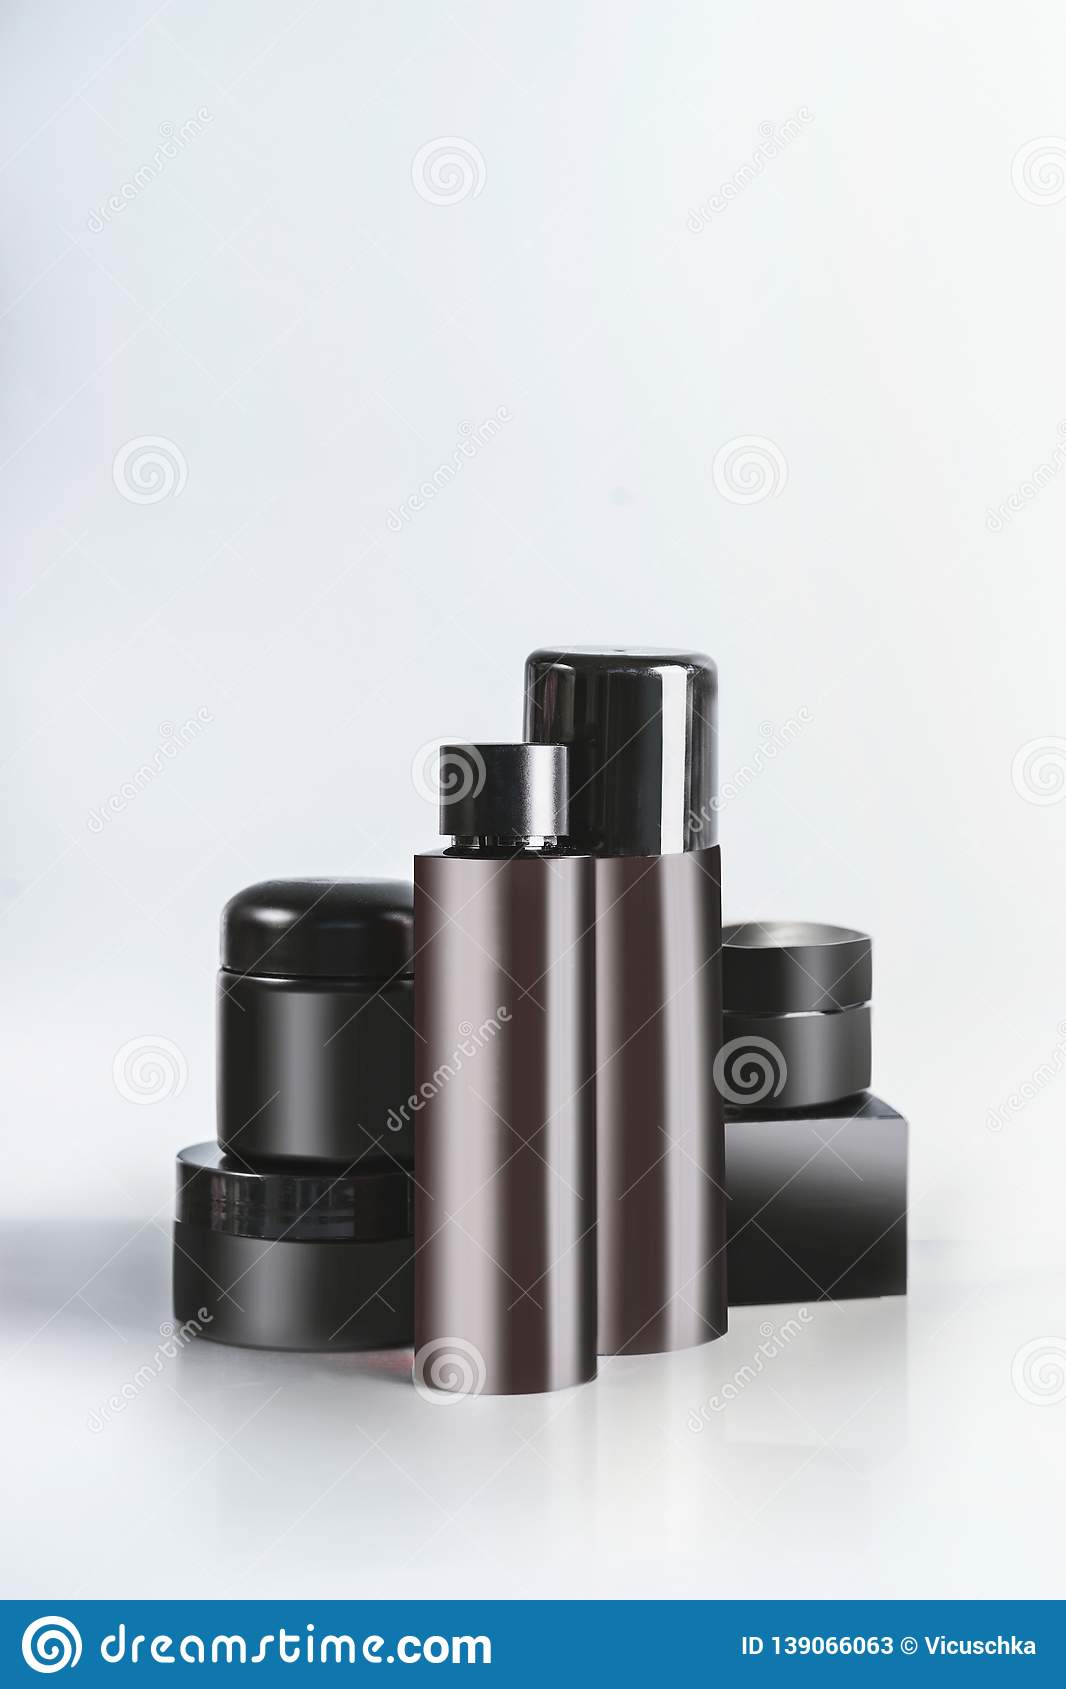 Black and brown cosmetic product jars and bottles with branding mock up, standing on light table at wall background. Snail mucin